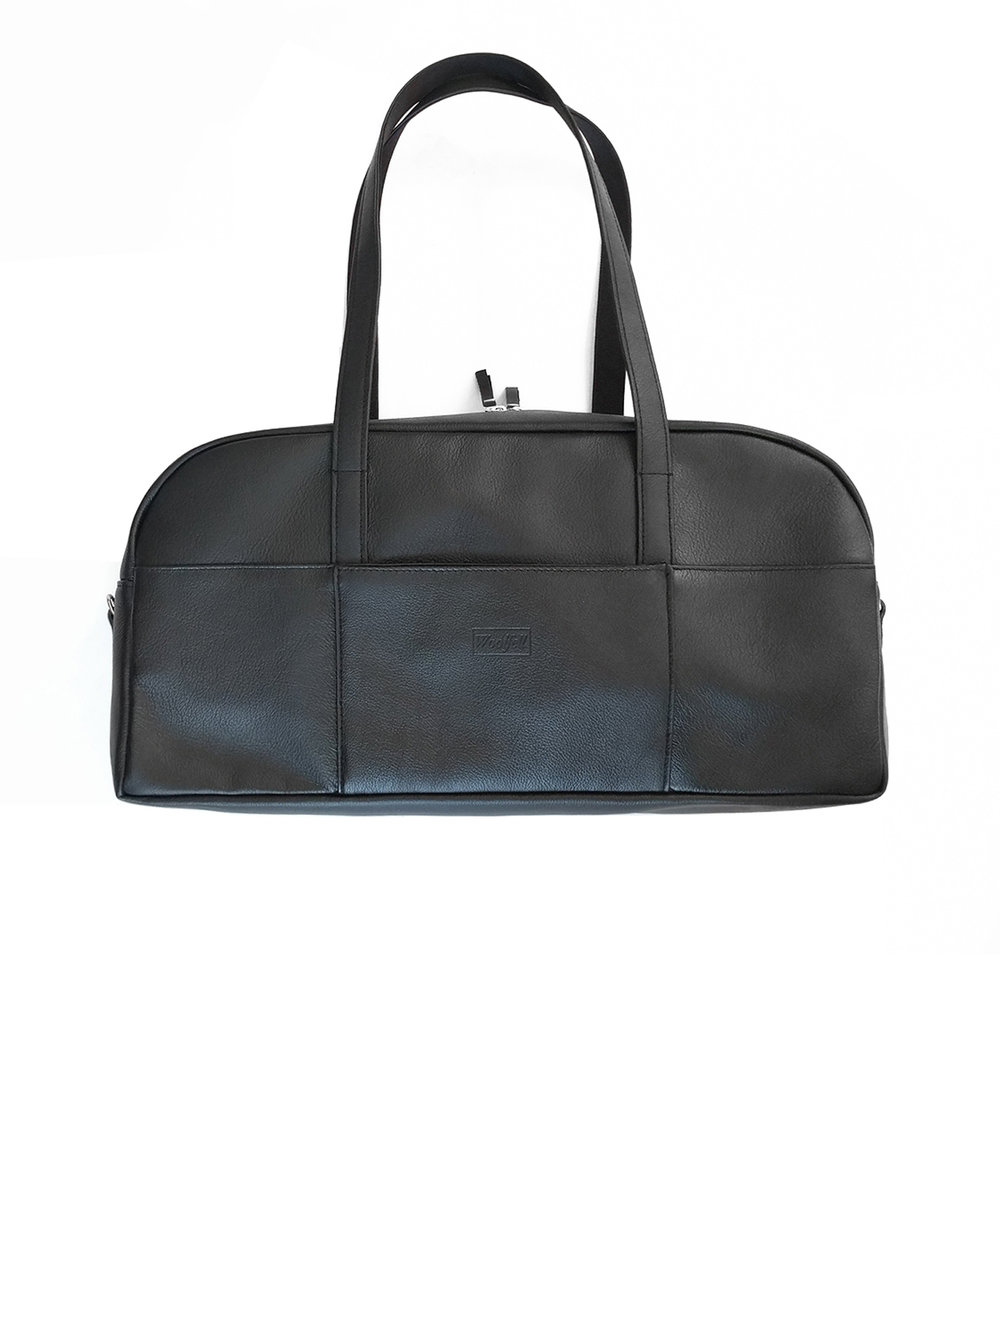 Cabin leather duffle bag - 310.00$